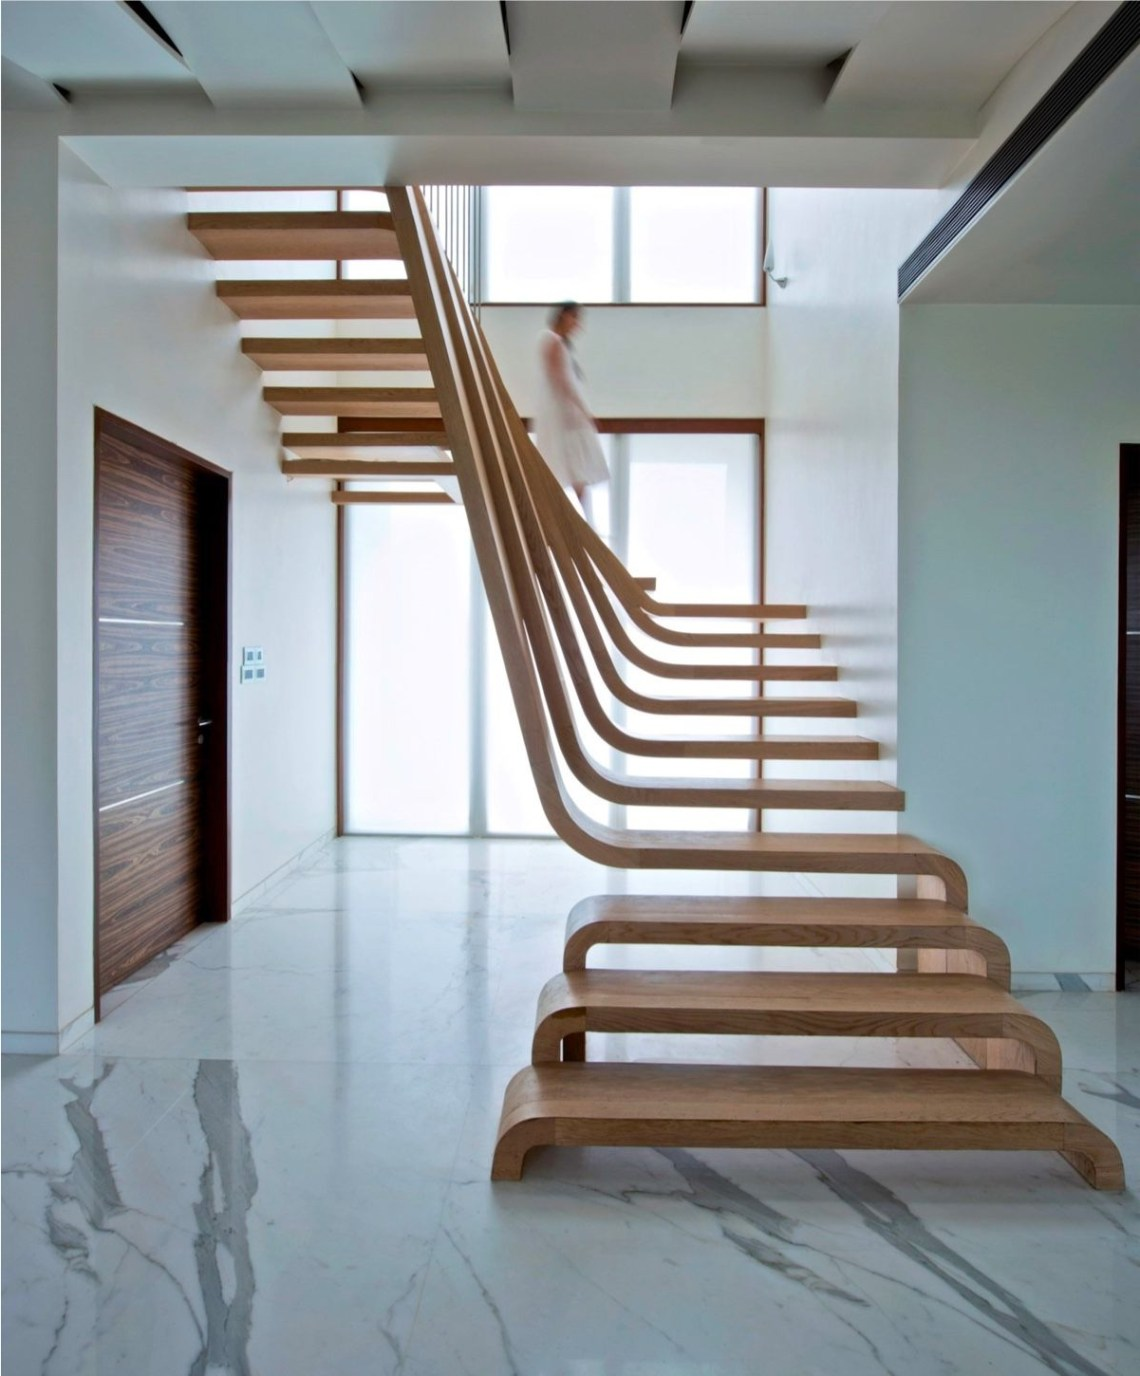 Homedesigning Via 25 Unique Staircase Designs To Take